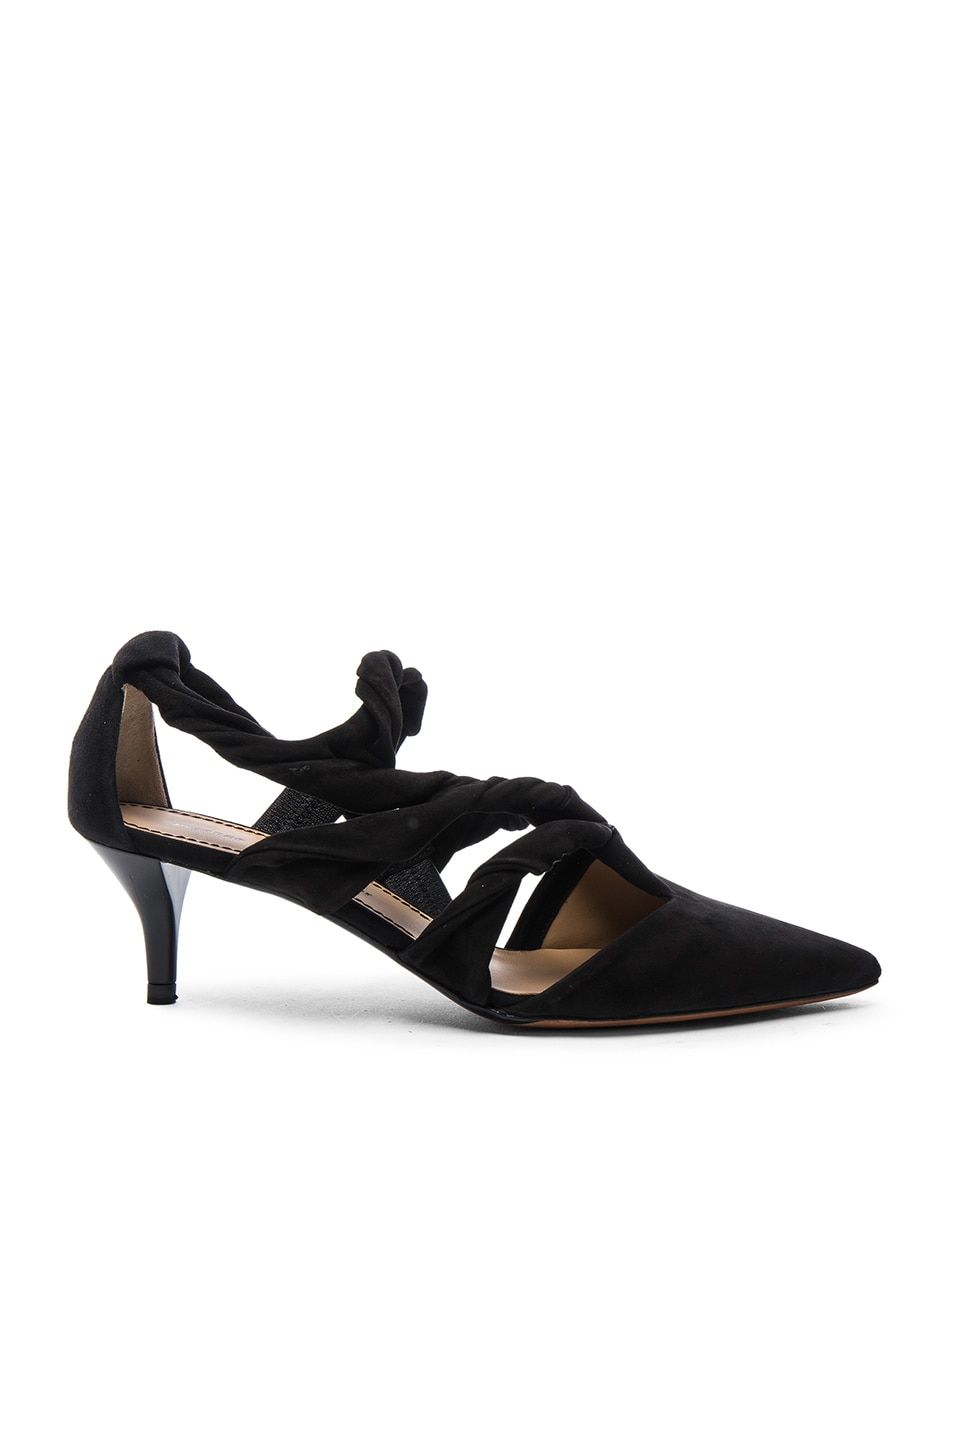 Image 1 of Proenza Schouler Suede Knotted Kitten Heels in Black